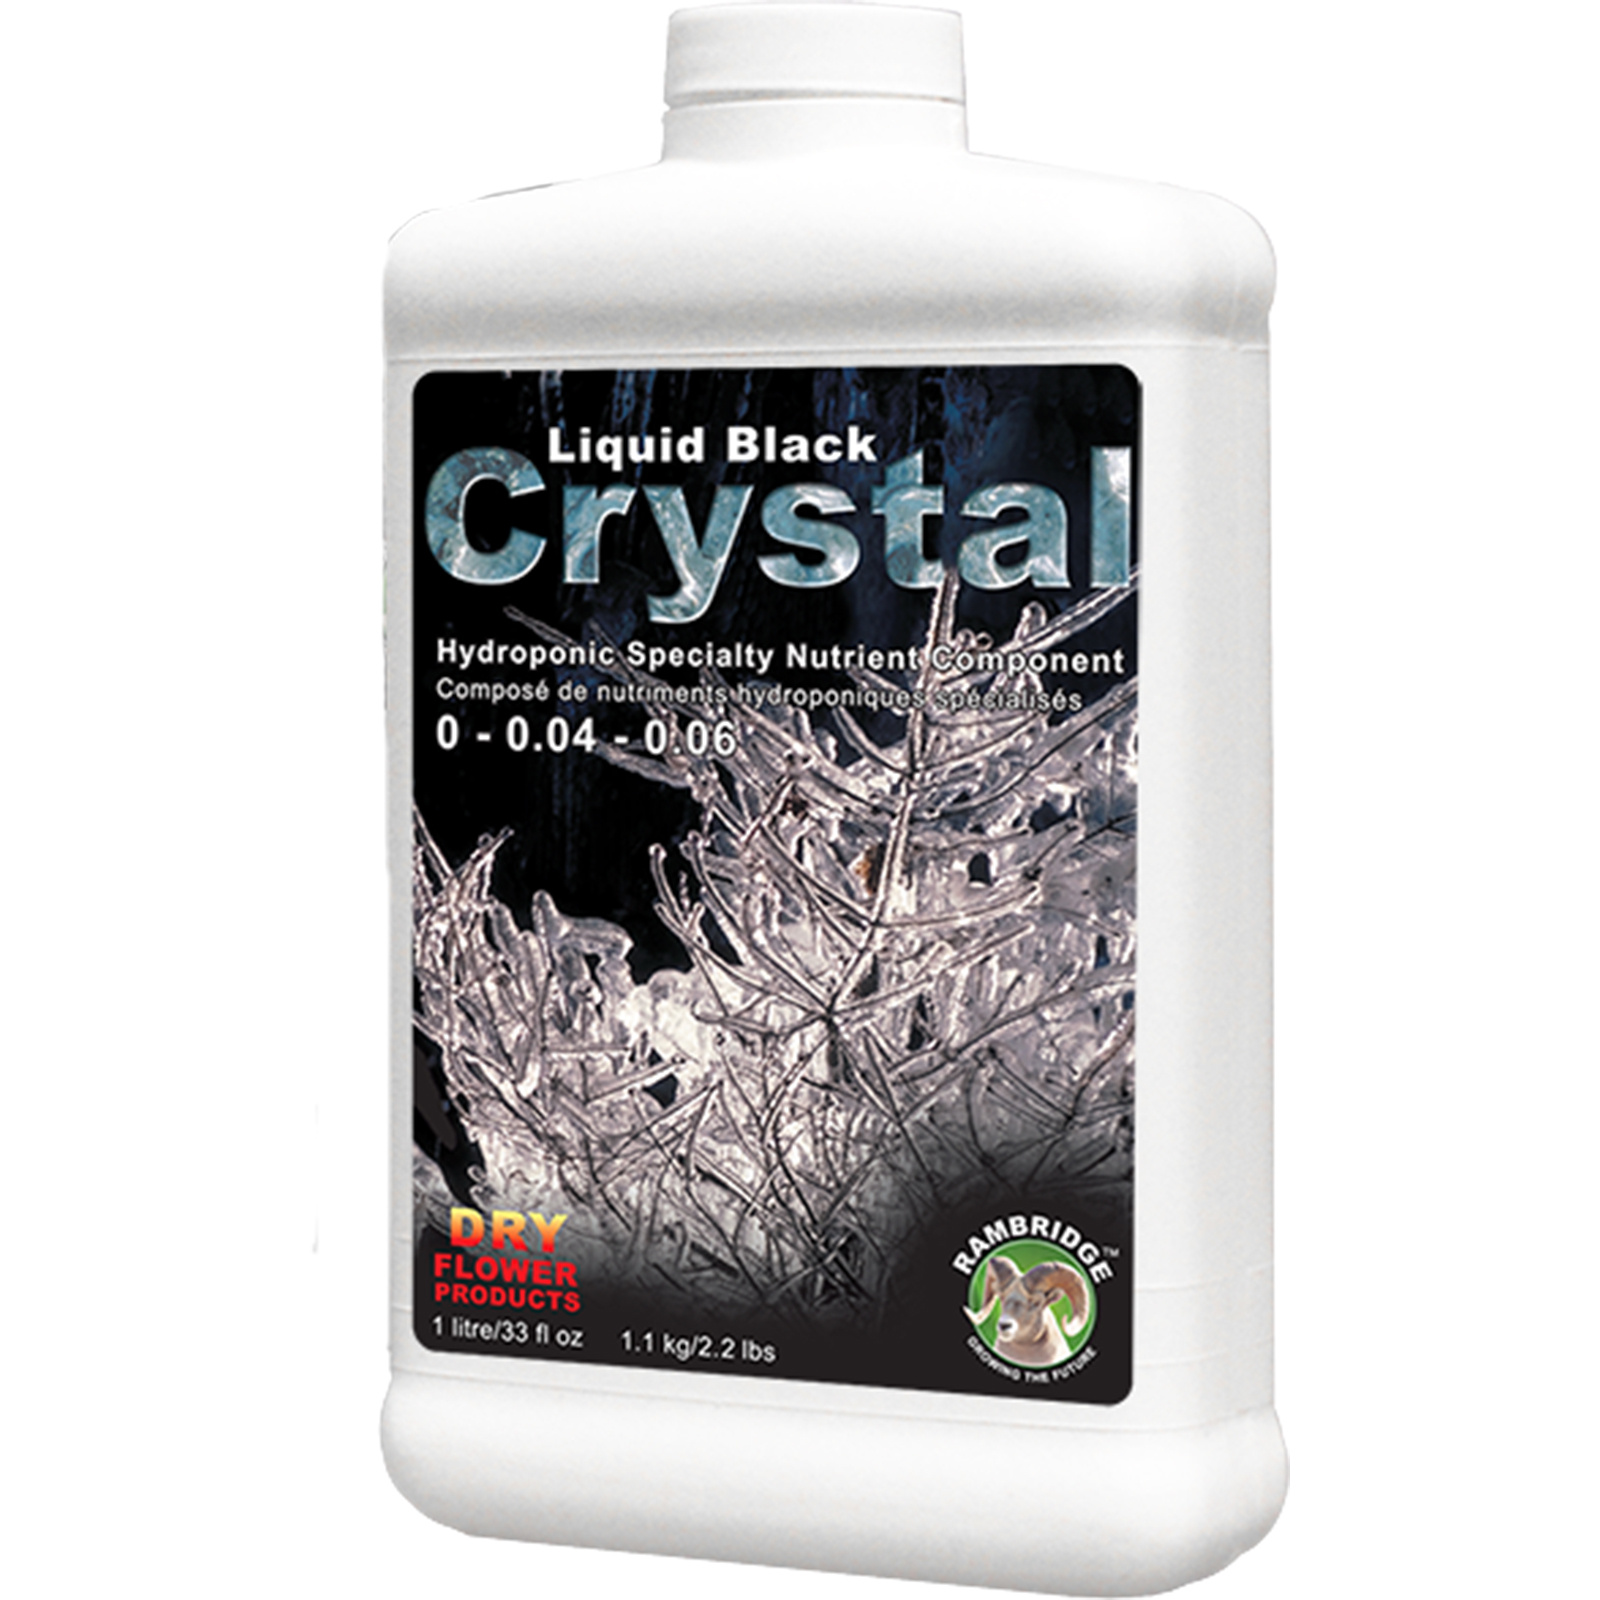 Liquid Black Crystal   0 - 0.04 - 0.06